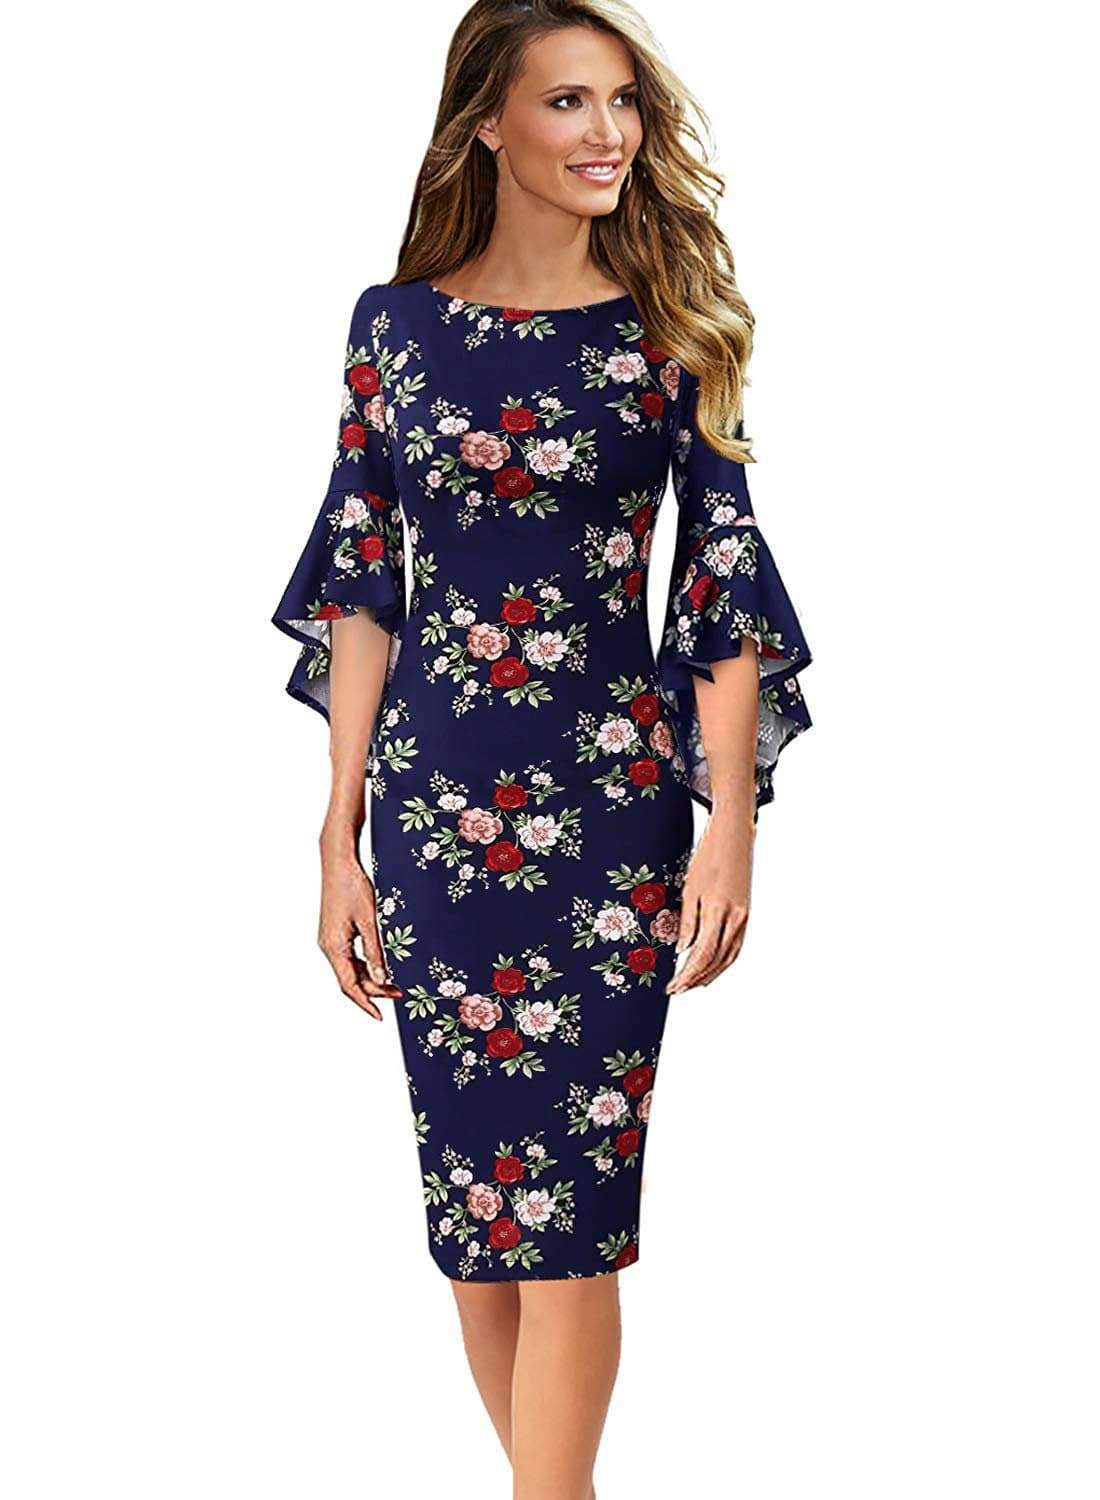 DAILYHAUTE Women's dress NAVY FLORAL / S Haute Edition Women's Bell Sleeves Cocktail Party Dress